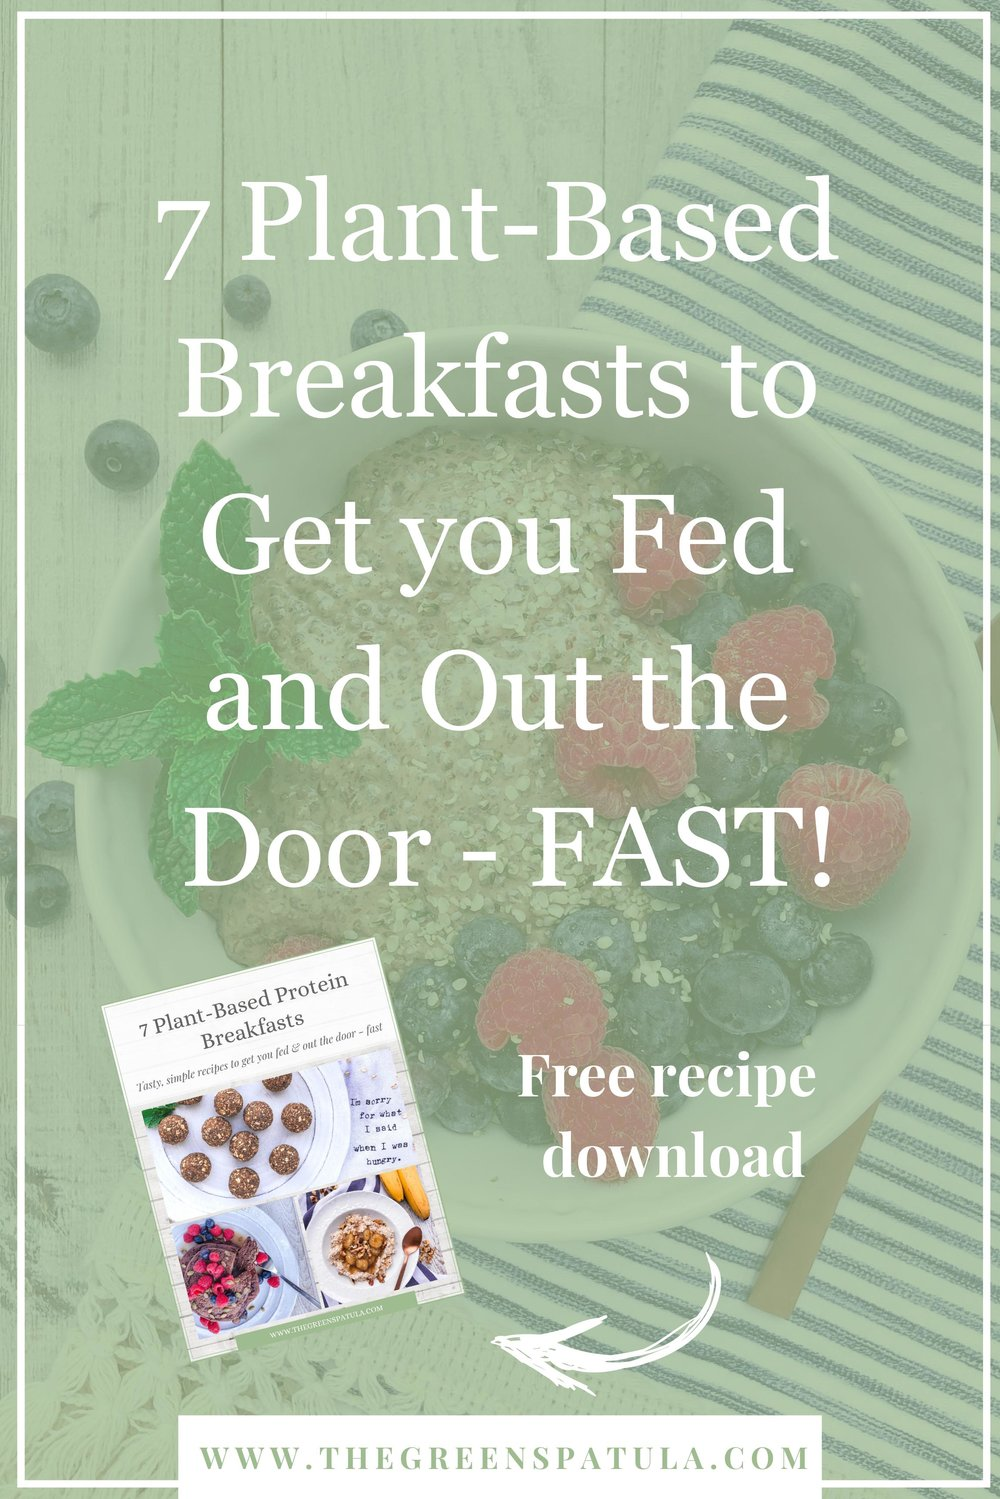 Download 7 tasty plant-based breakfast recipes to get you fed and out the door - FAST! Simplify your mornings by meal prepping your breakfasts so you can fuel up for the day ahead and curb midday cravings and energy slumps. All recipes are vegan, plant-based, gluten-free, and delicious. Great for kids and adults! #plantbased #healthybreakfast #protein #vegan #glutenfree #breakfast #mealprep